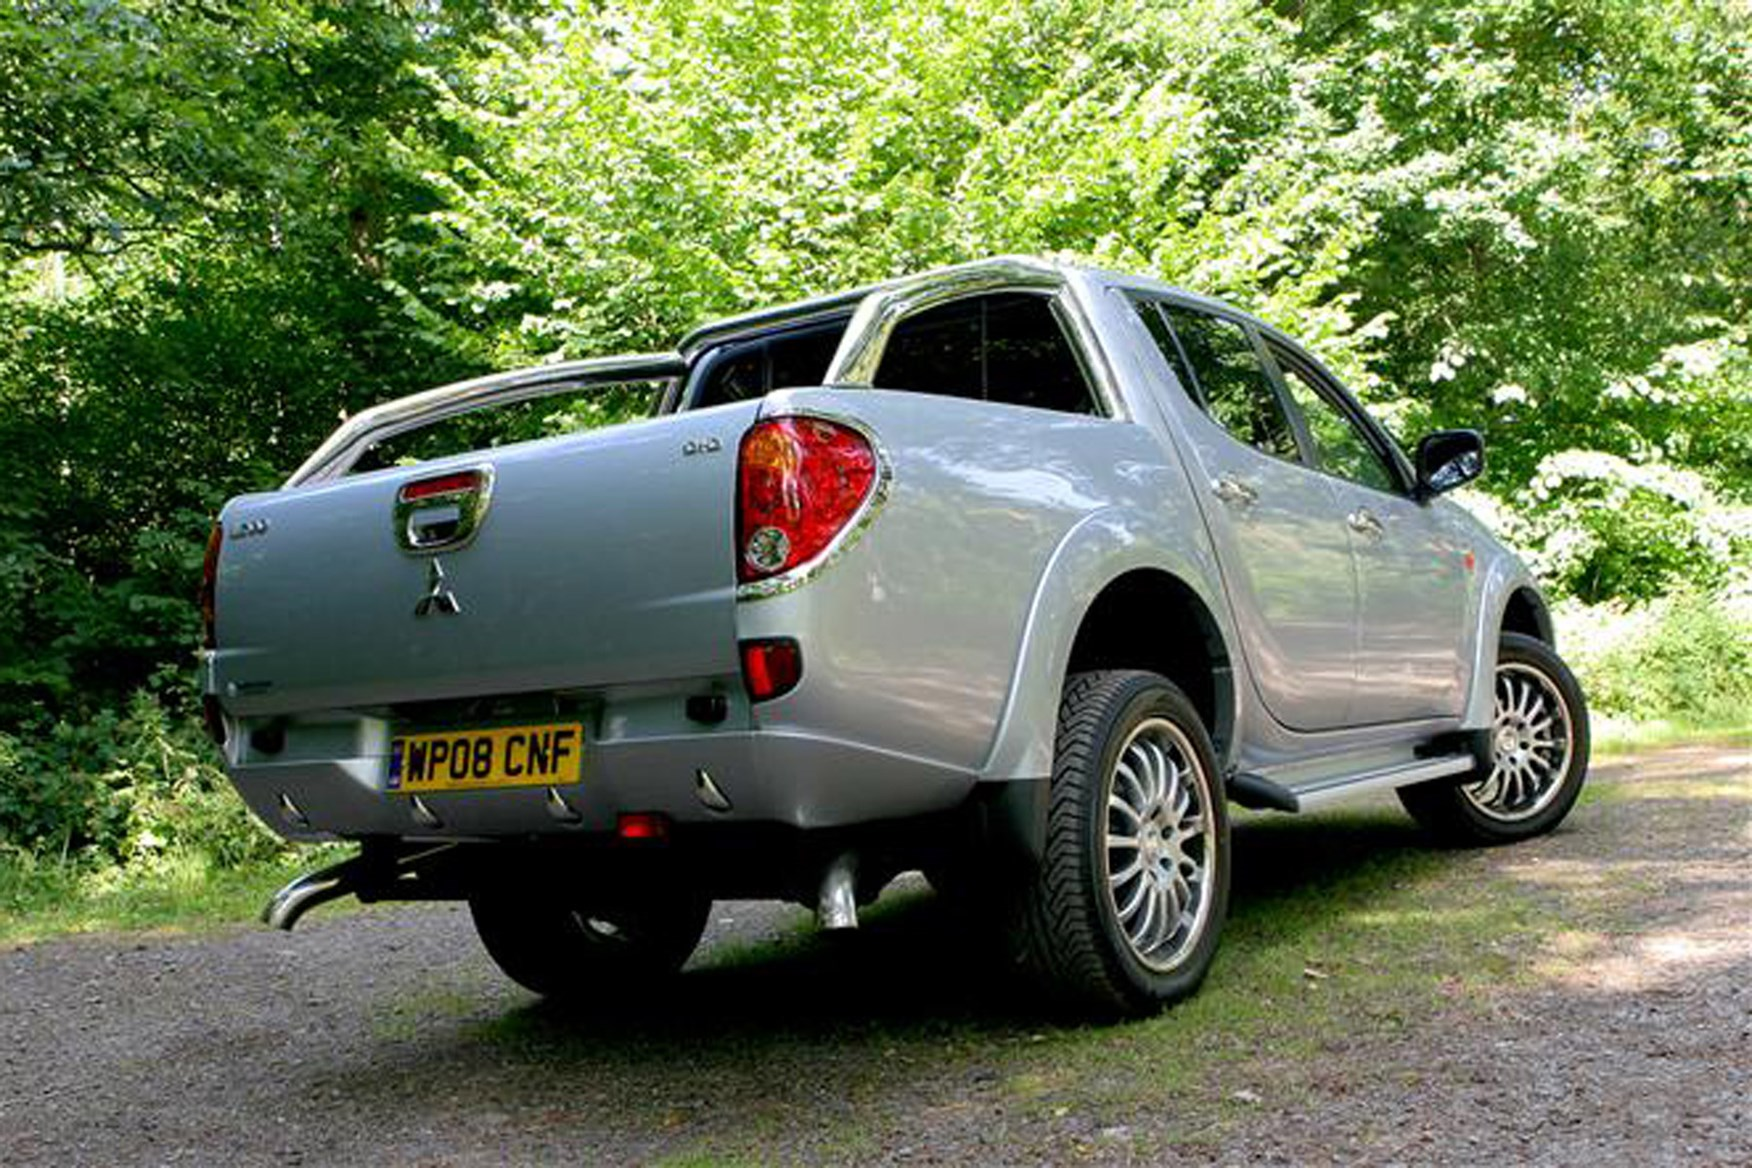 Mitsubishi L200 2006-2015 review on Parkers Vans - rear exterior